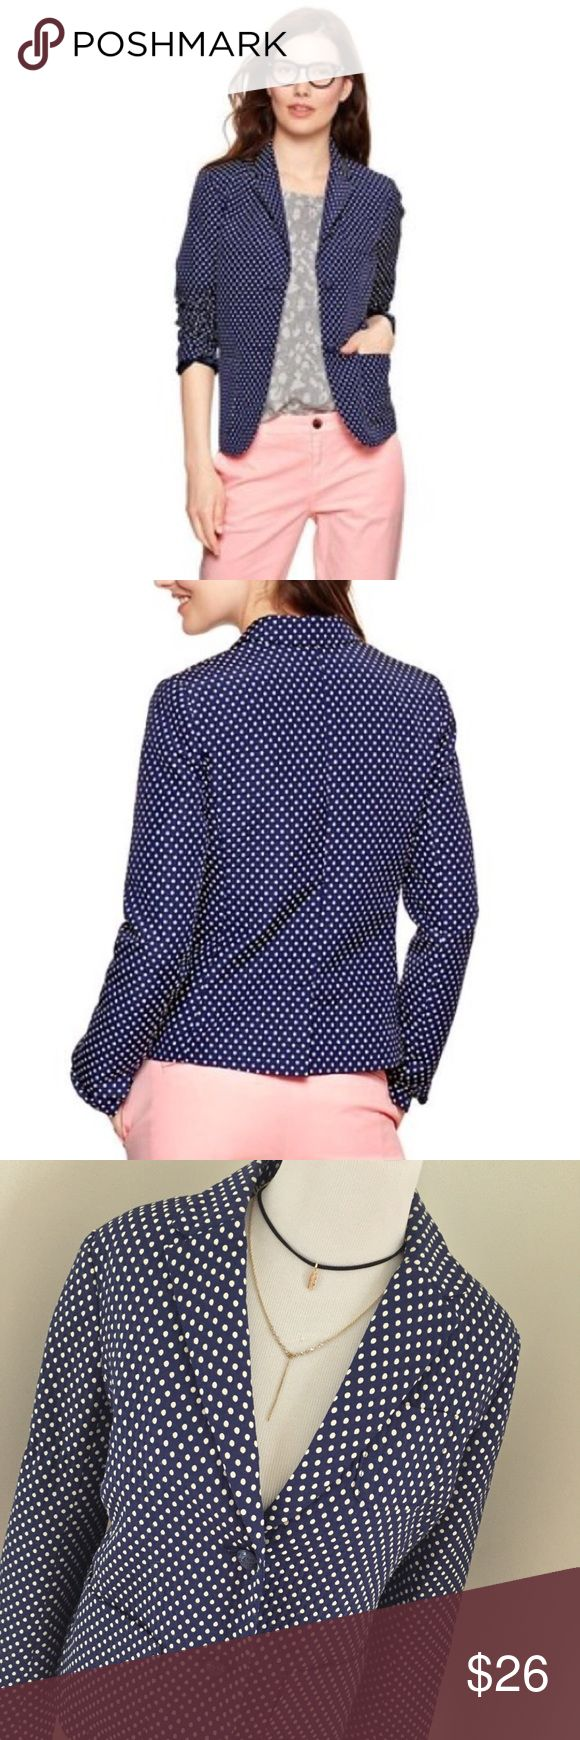 Gap Academy Navy Polka Dot Blazer Cute and classy polka dot blazer by Gap. Navy with white dots. Two button closure with pocket on either side. Size 6, great condition. GAP Jackets & Coats Blazers